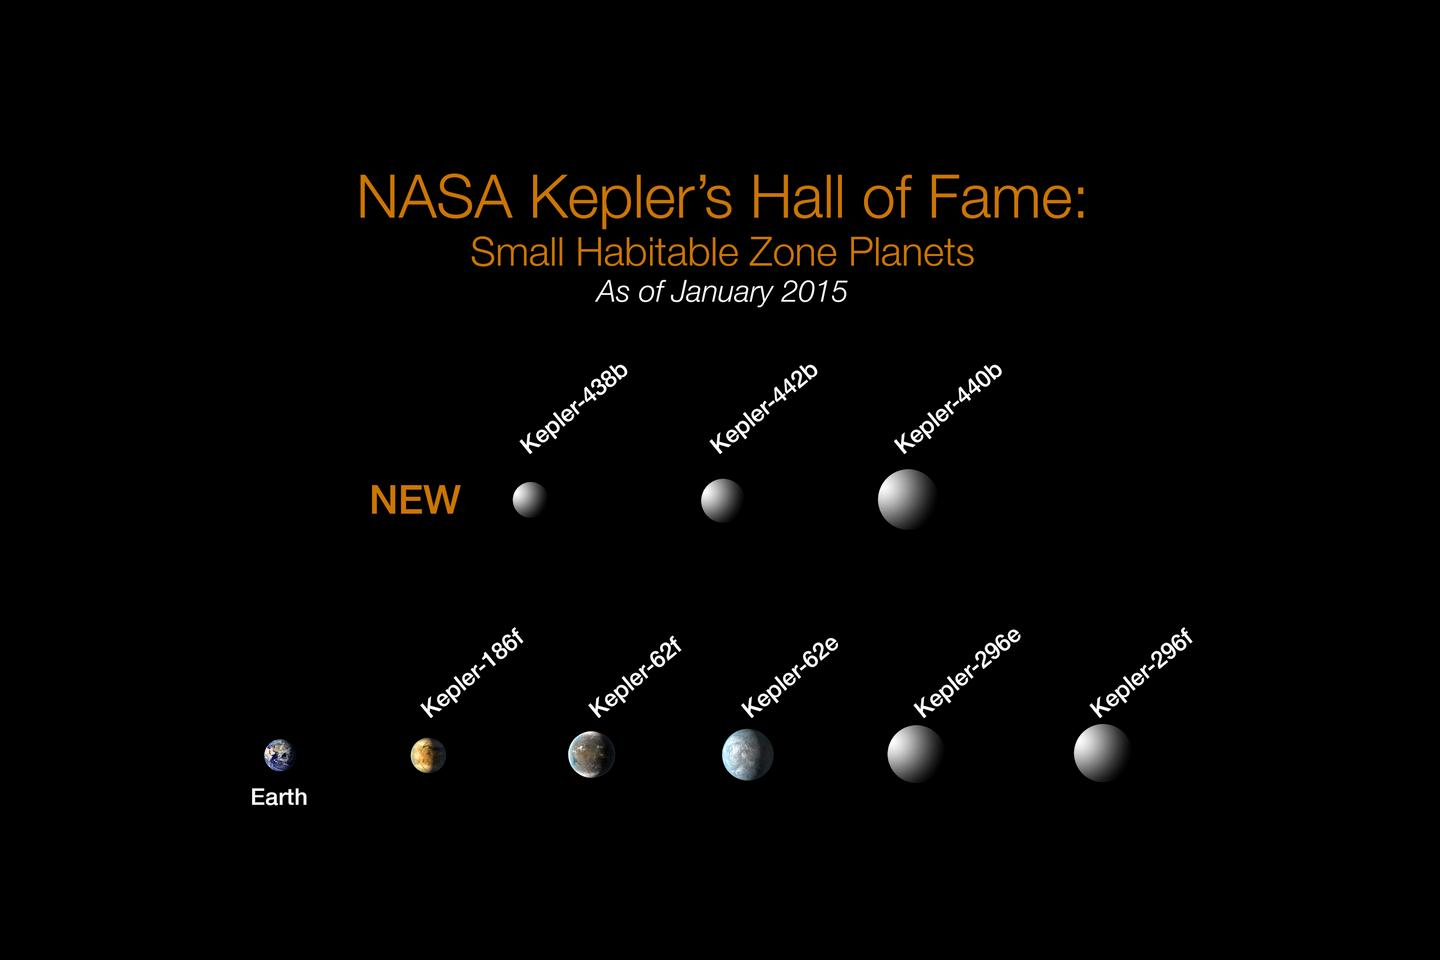 The new planets found by Kepler compared to the Earth (Image: NASA)